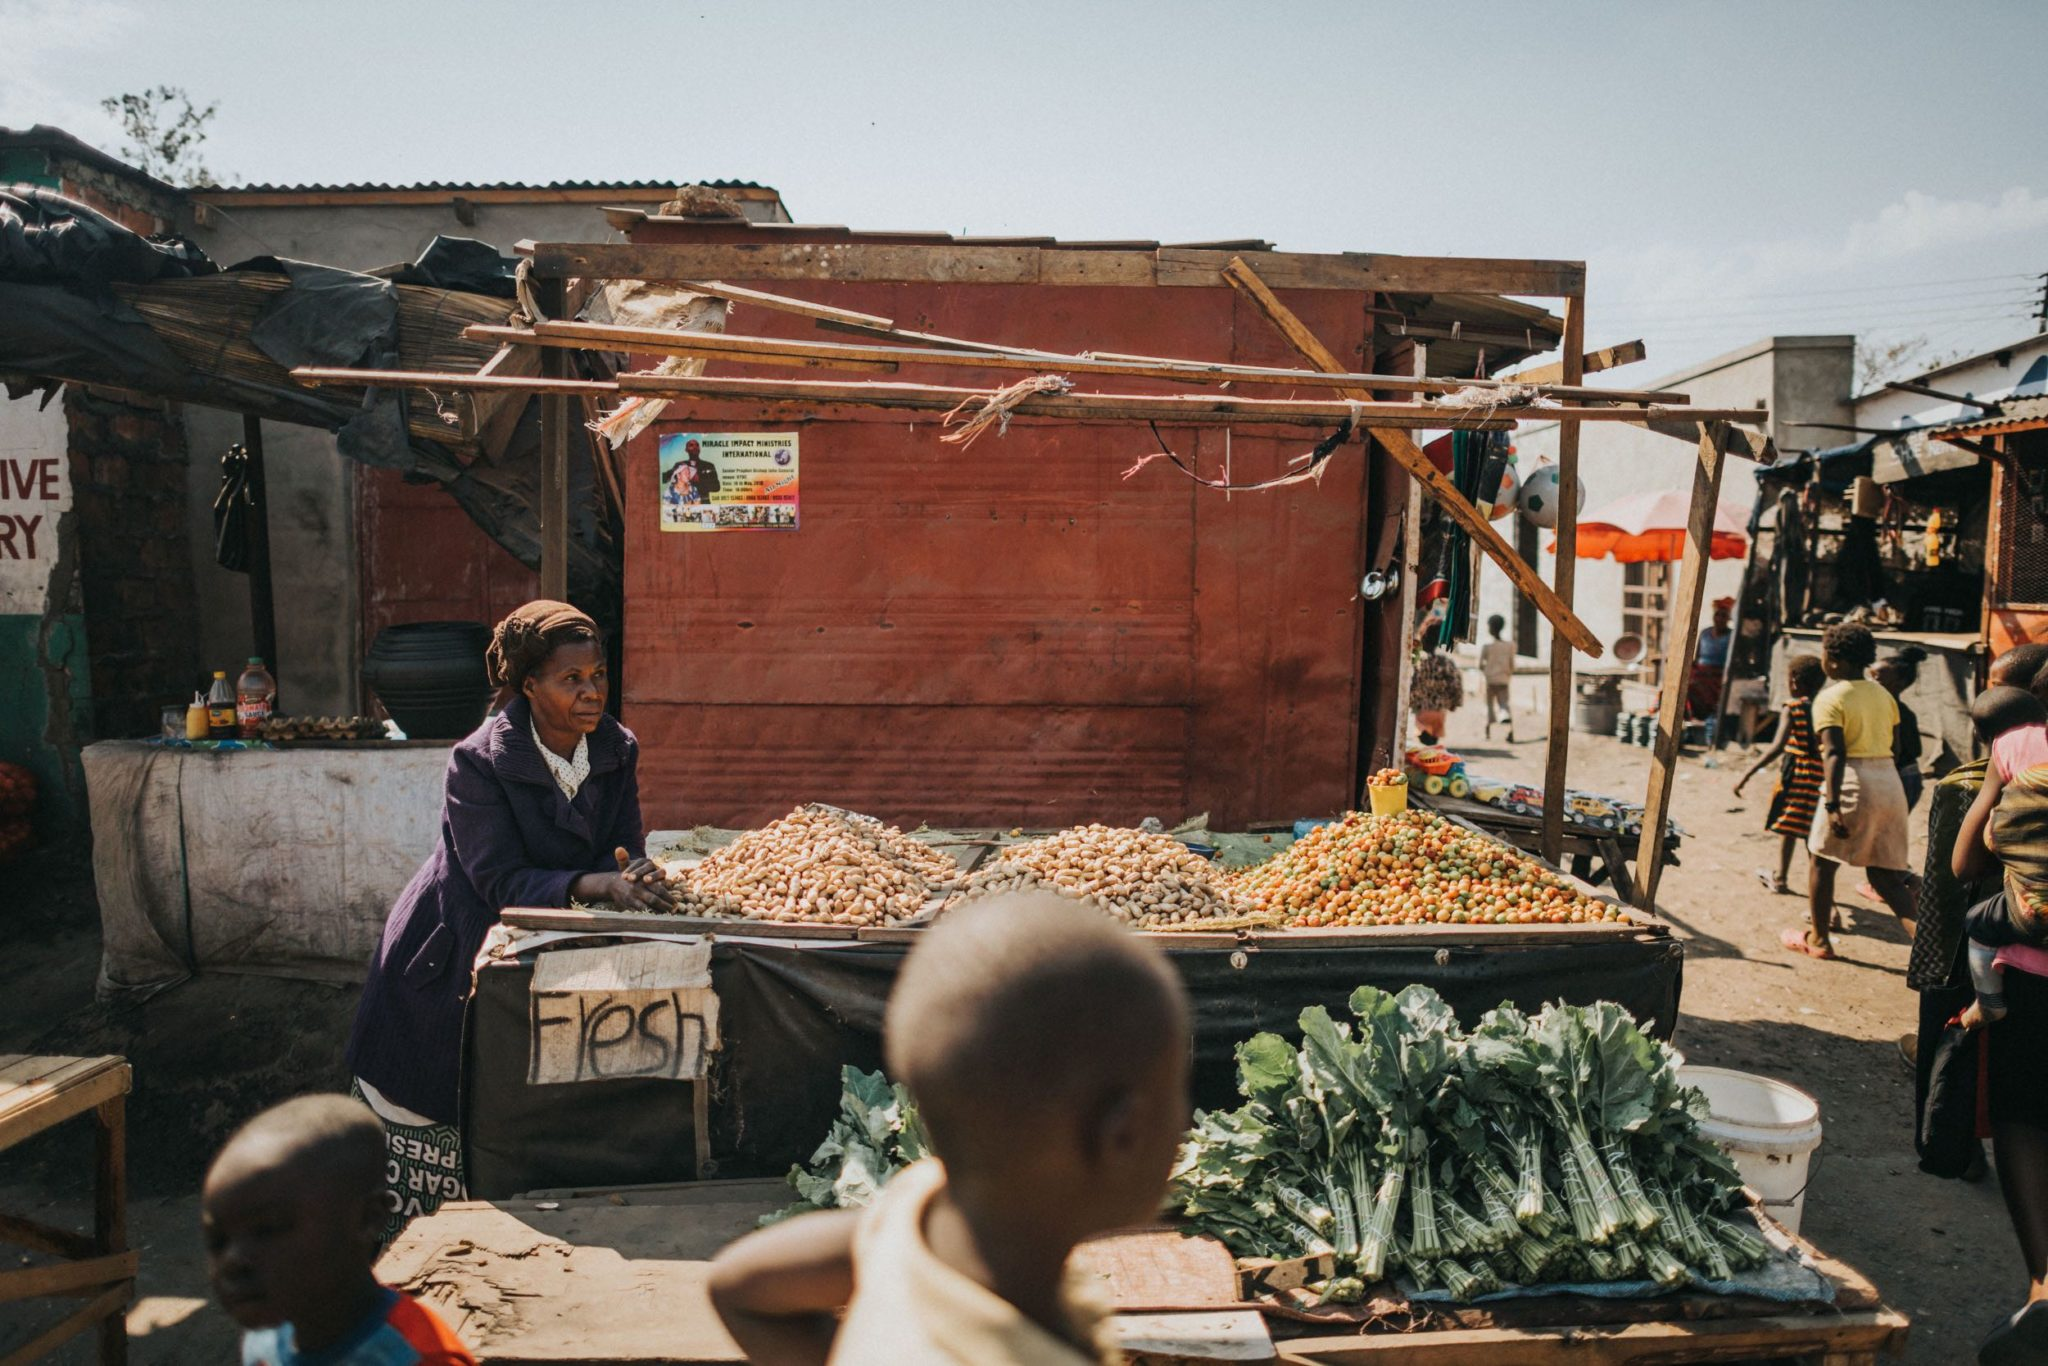 African Photography For Sale. The Market, Zambia Collection